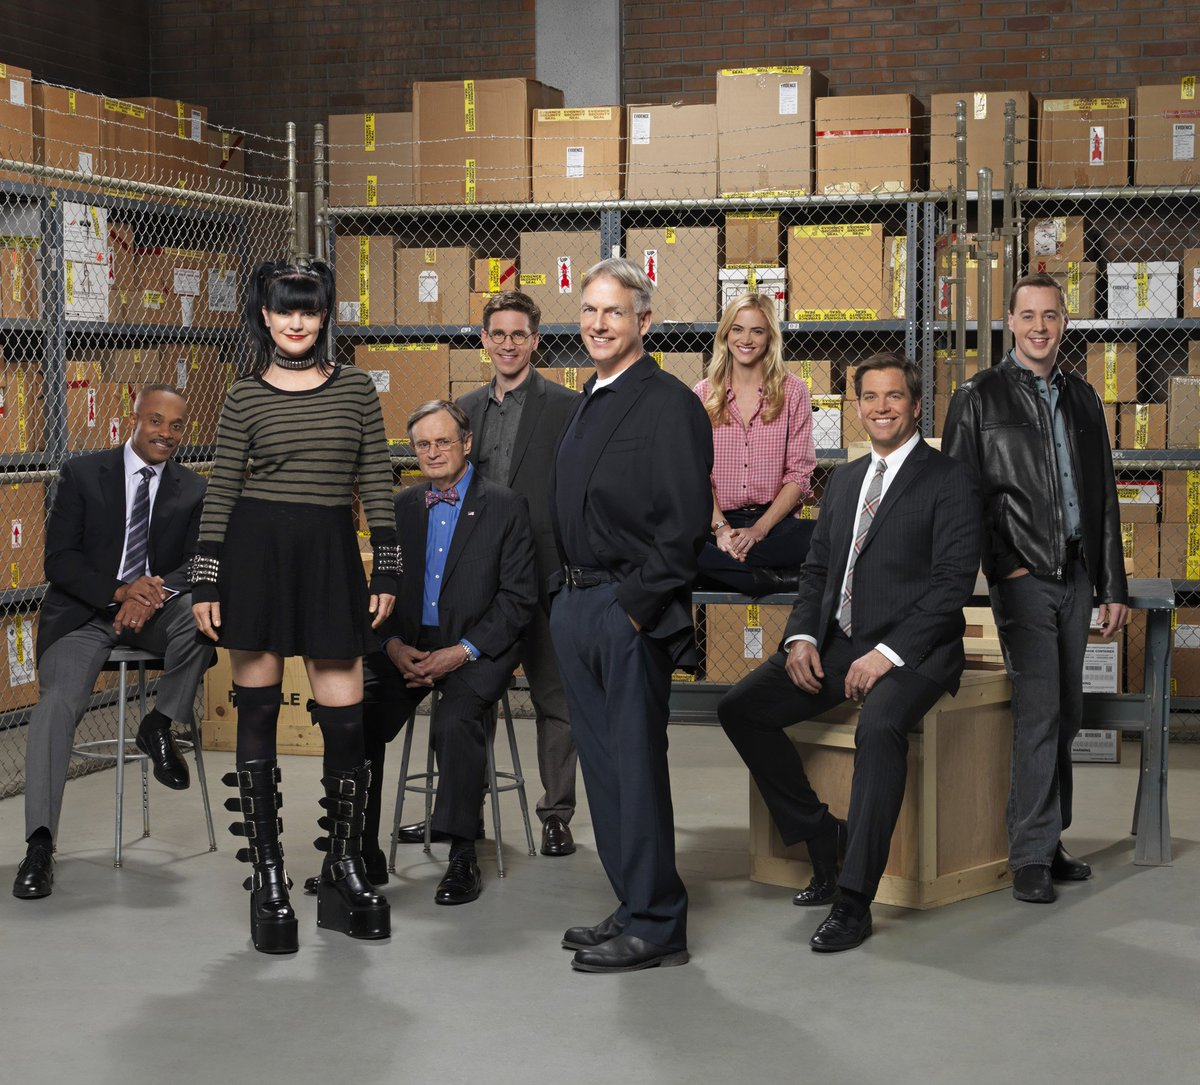 BREAKING NEWS - #NCIS has been renewed for 2 more seasons on @CBS! https://t.co/zURSg1r1Sl